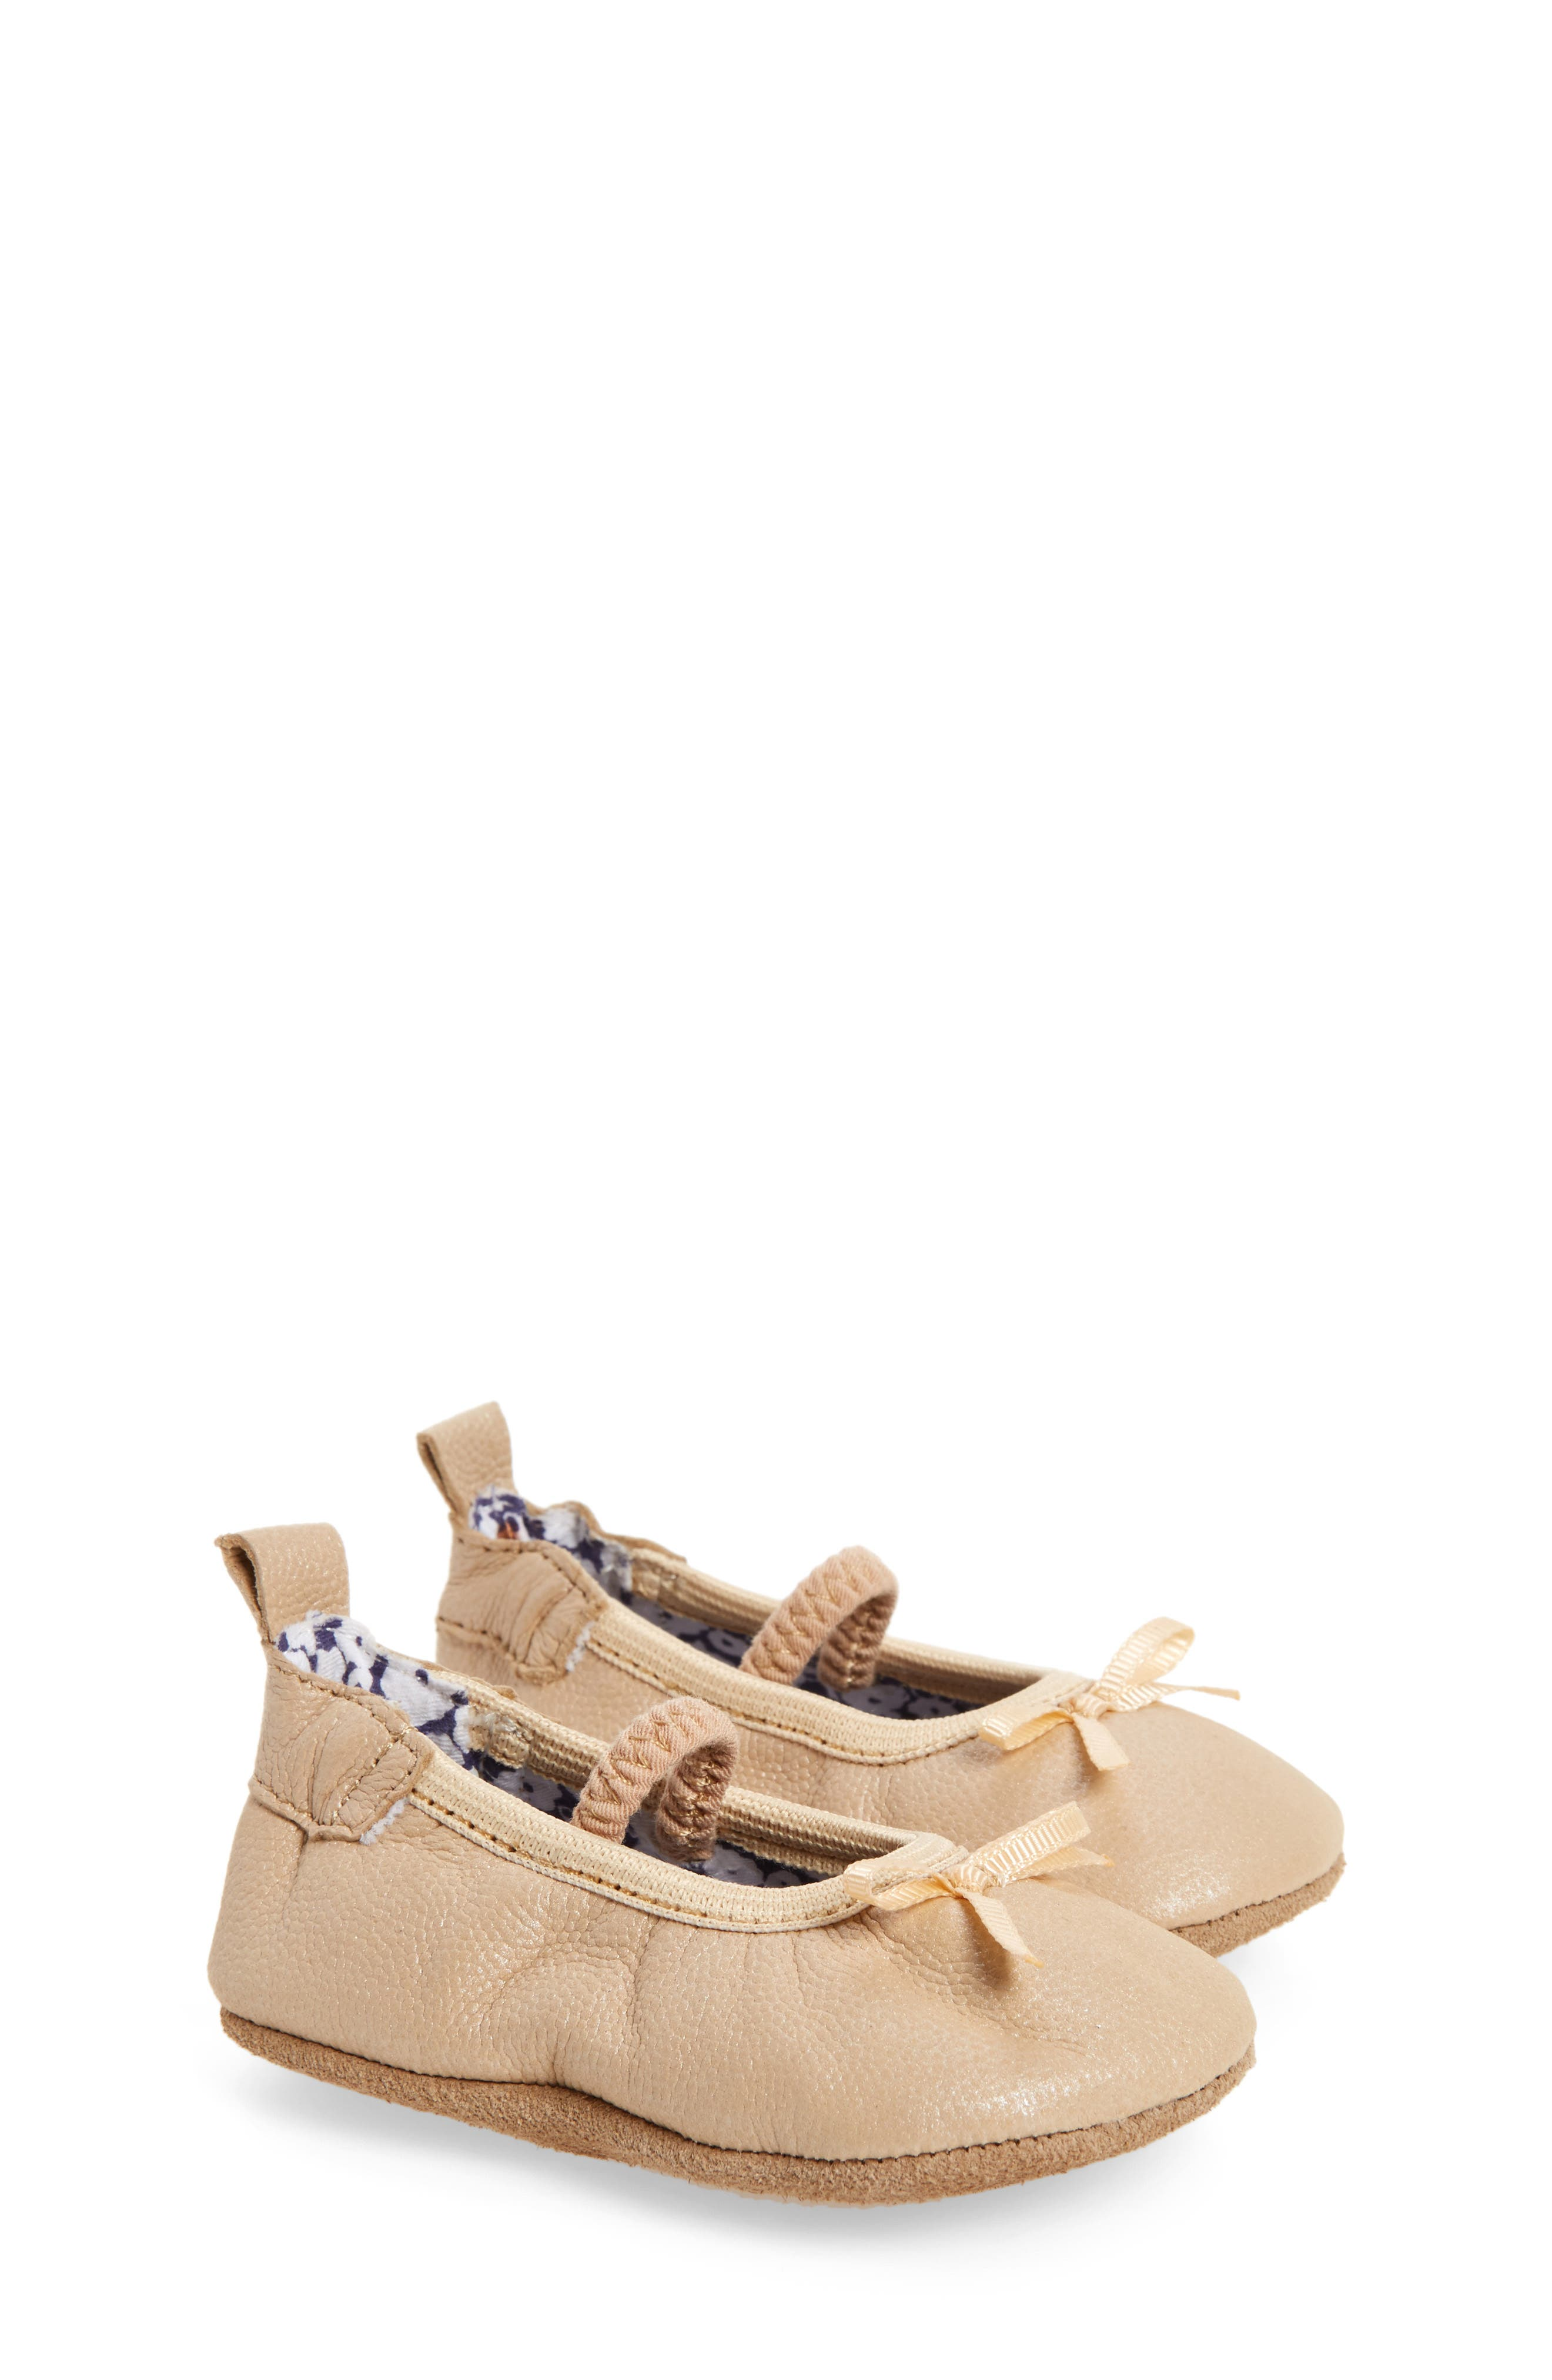 Rachel Ballet Flat,                             Main thumbnail 1, color,                             270